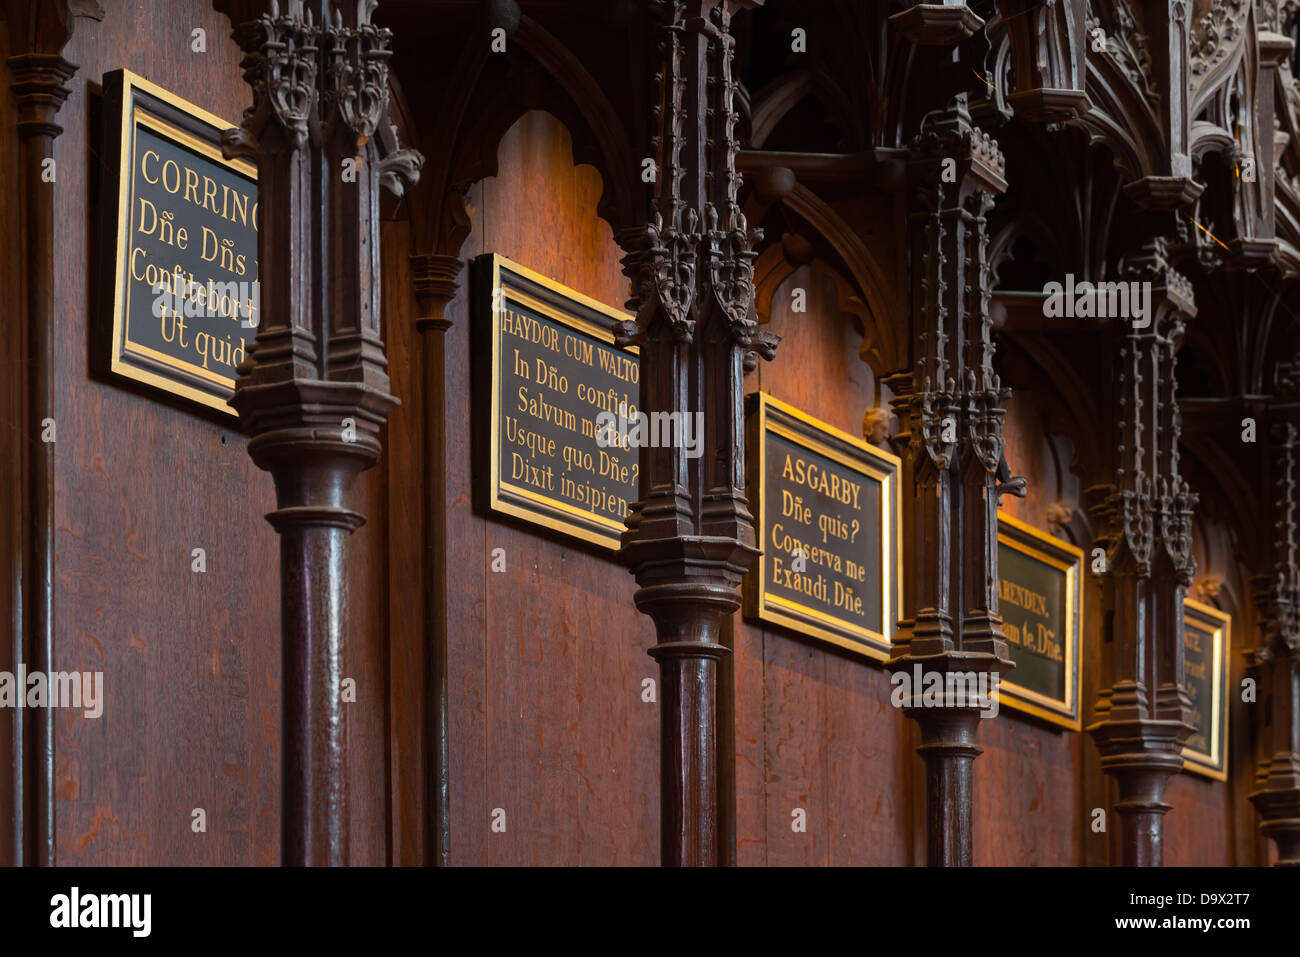 Lincoln - St. Hugh's choir seats with nameplates inside the Cathedral; Lincoln, Lincolnshire, UK, Europe - Stock Image